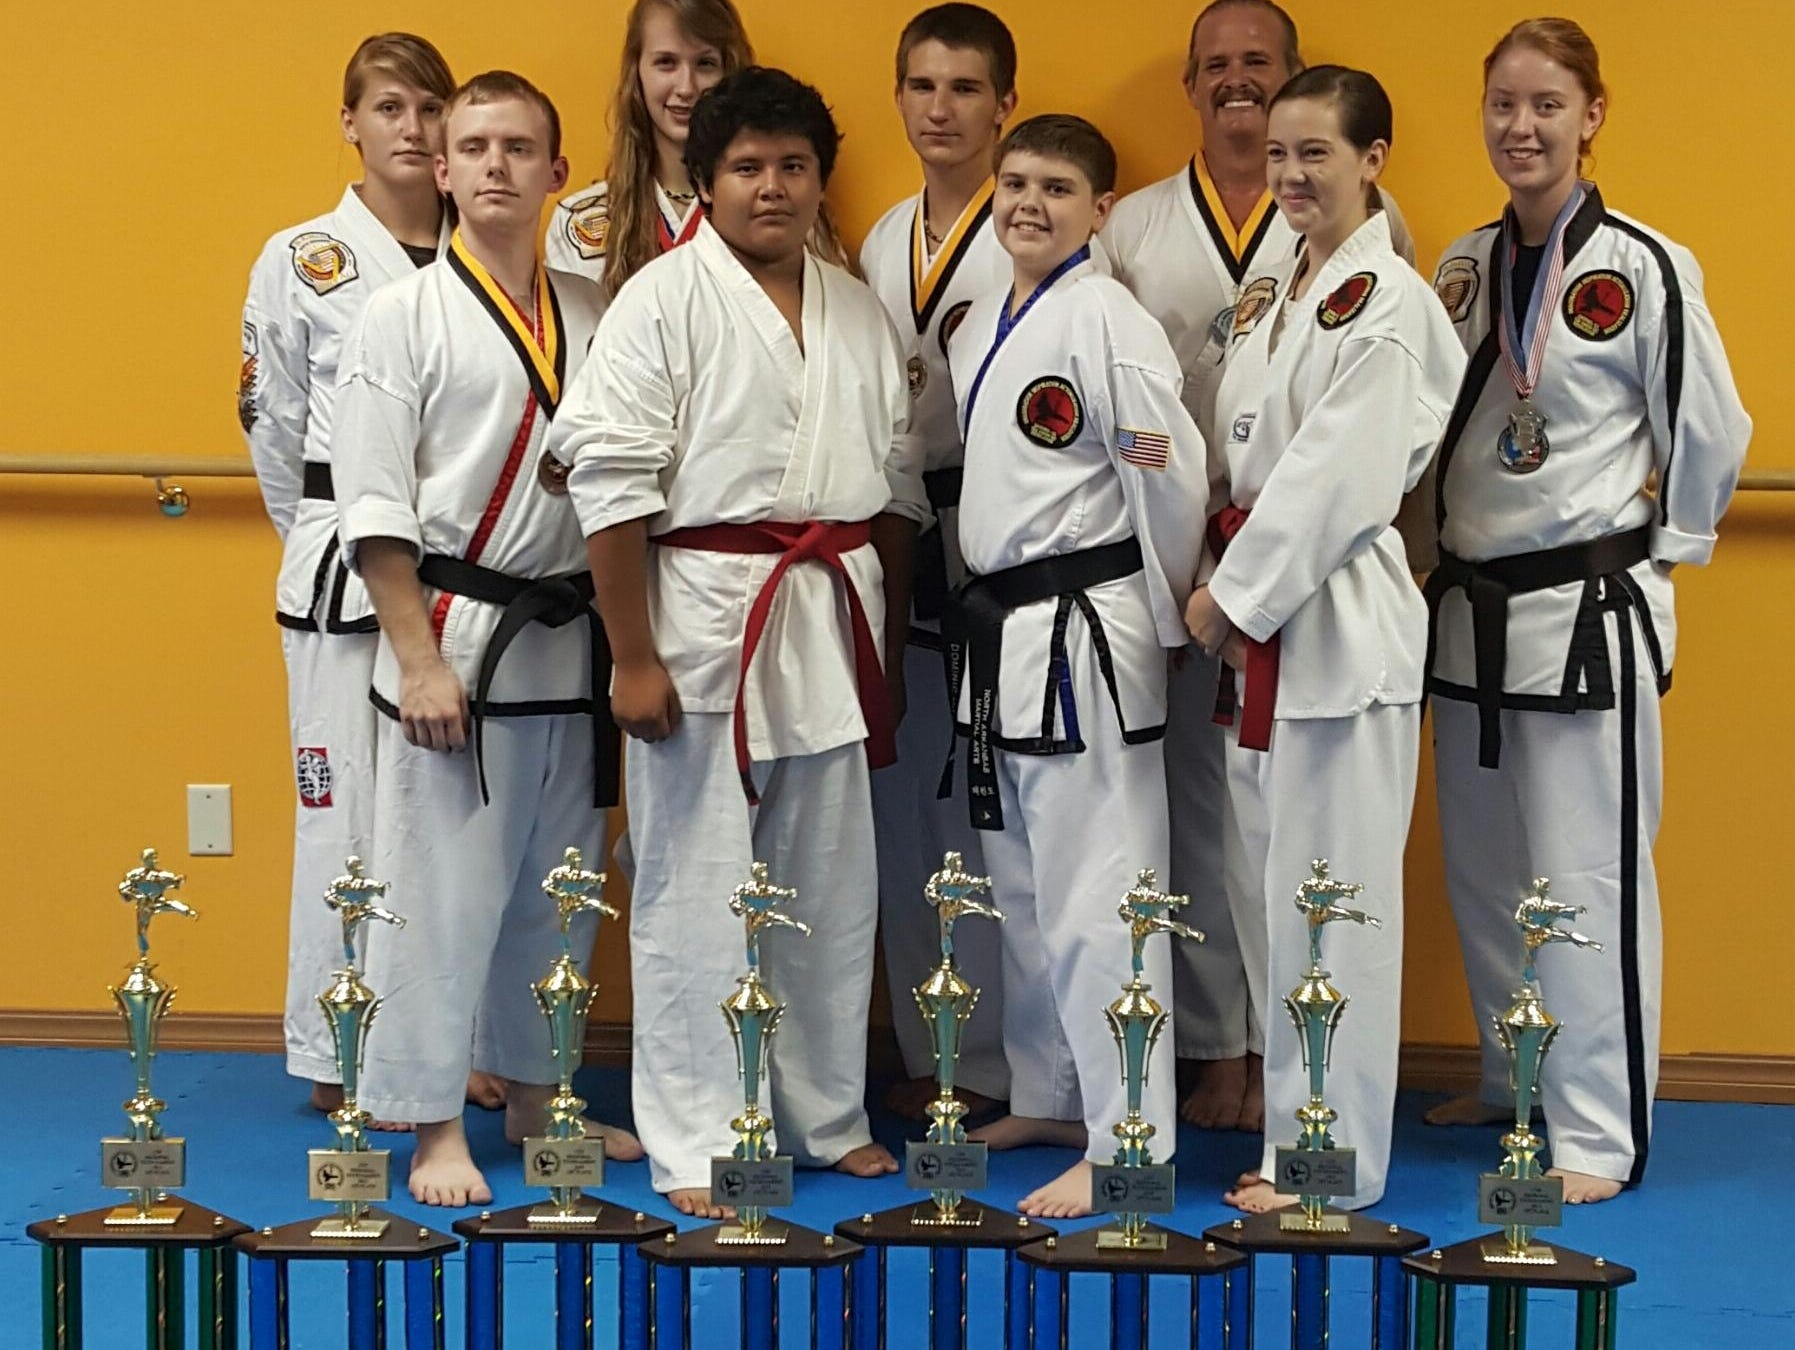 Members of North Arkansas Martial Arts display the eight first-place trophies they won at a recent tournament in Mt. Juliet, Tenn.